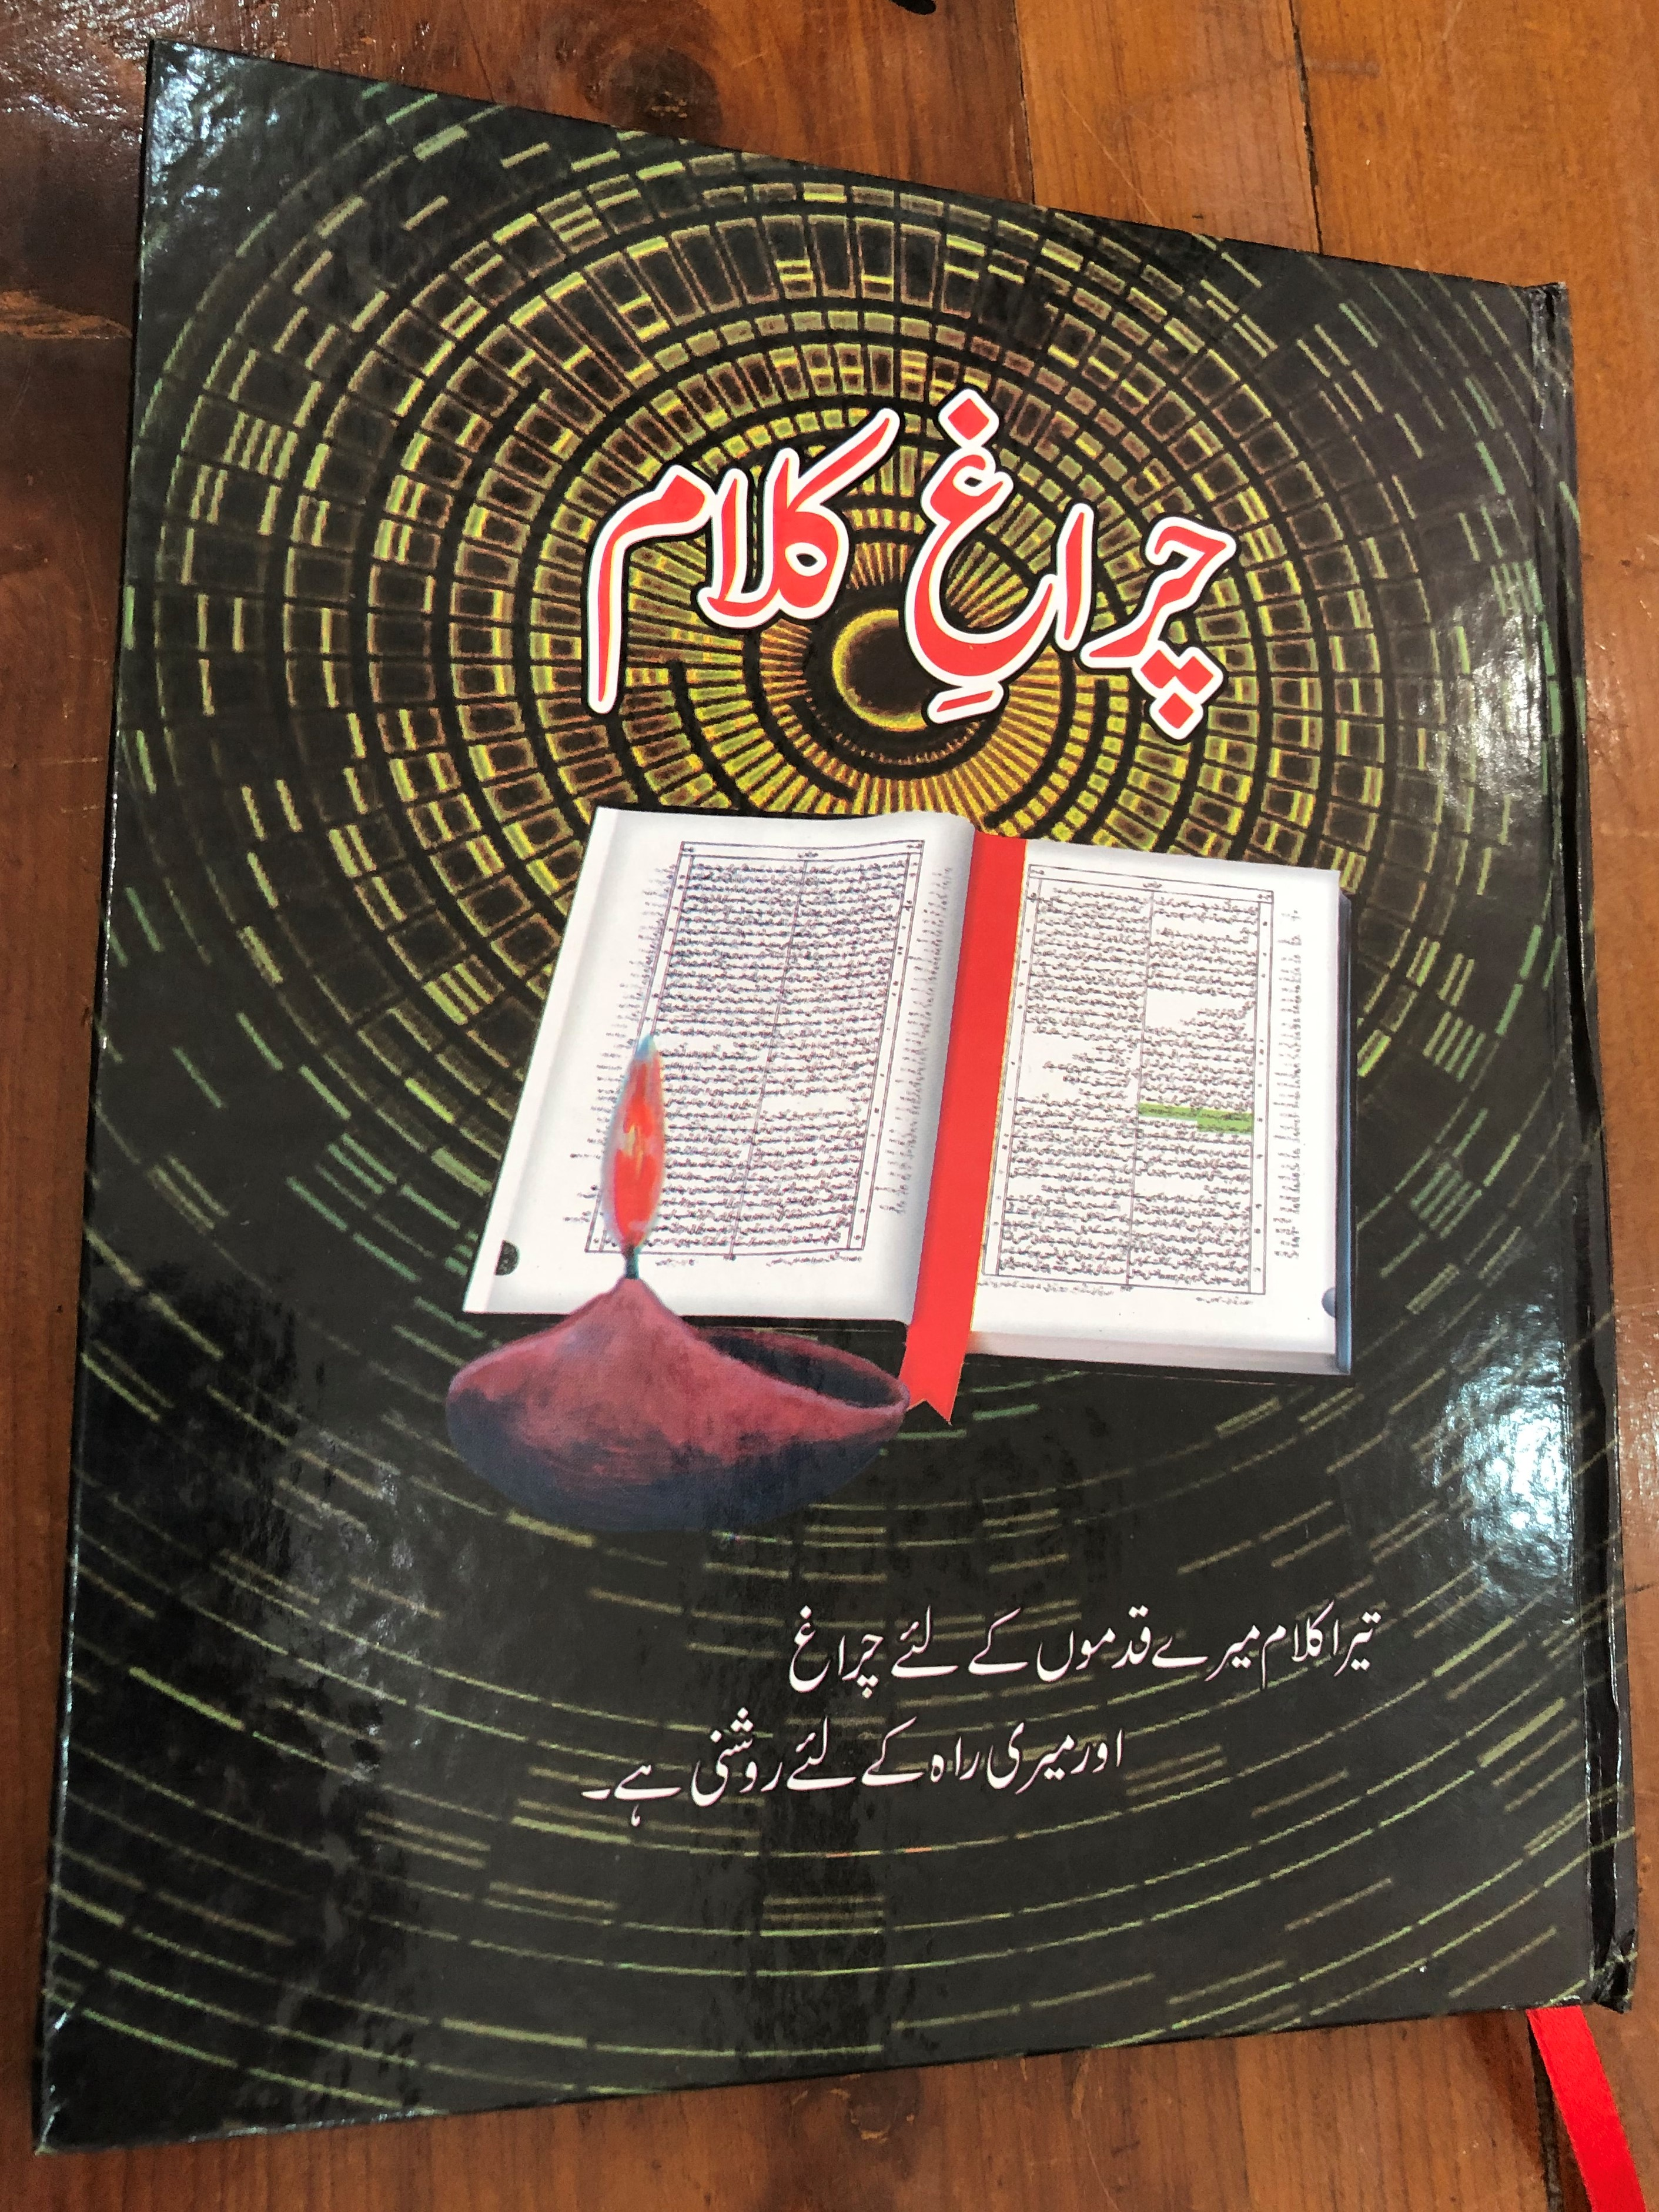 charagh-e-klam-urdu-pakistan-bible-society-2017-hardcover-1-.jpg